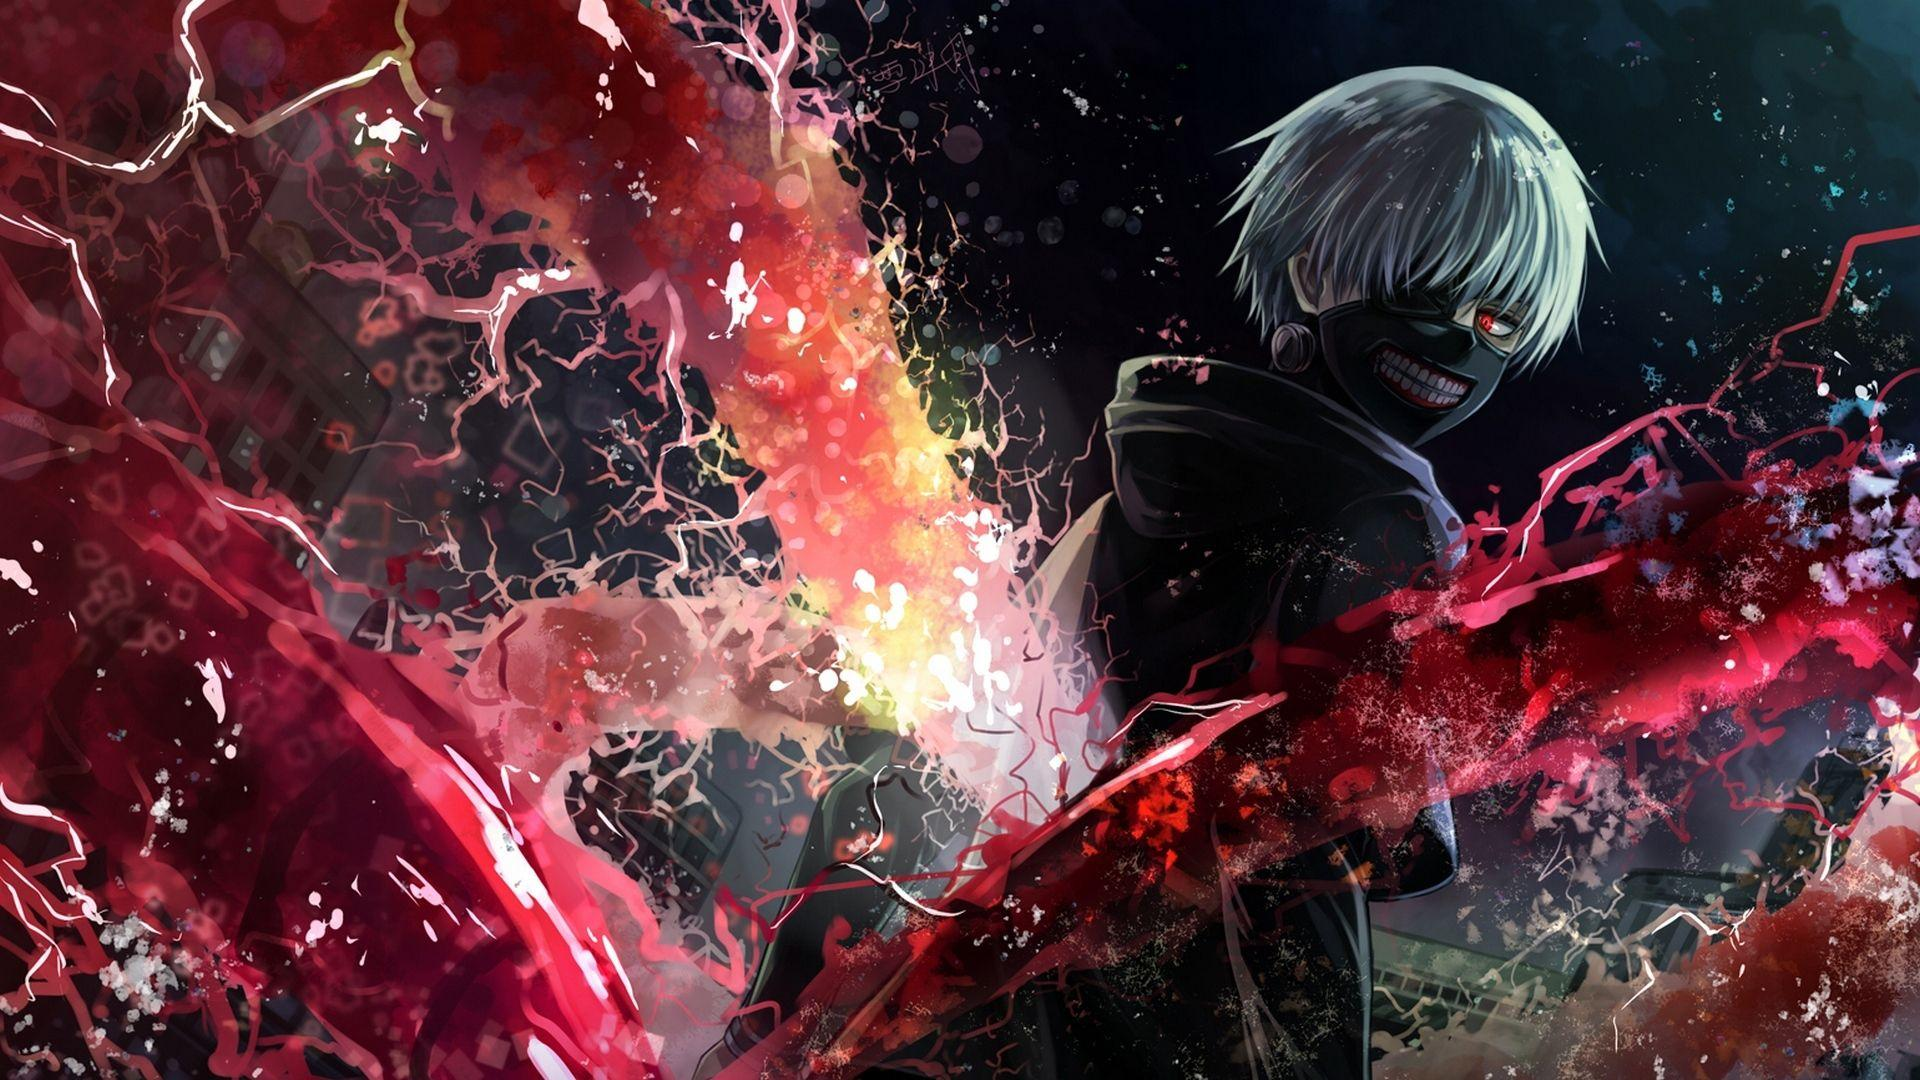 Anime Wallpapers Hd 1920x1080 Wallpaper Cave